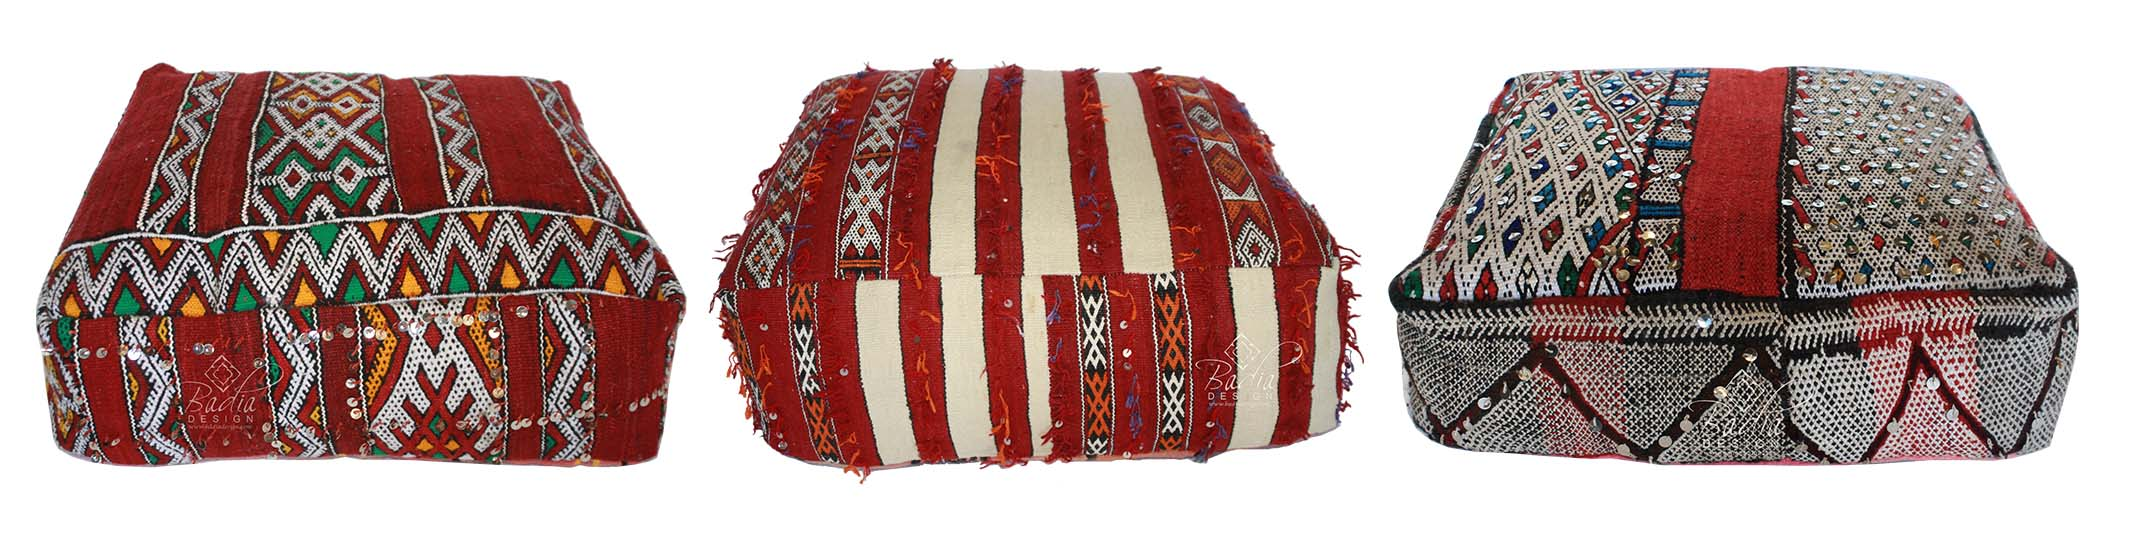 moroccan-party-rental-kilim-floor-cushion-fb708.jpg